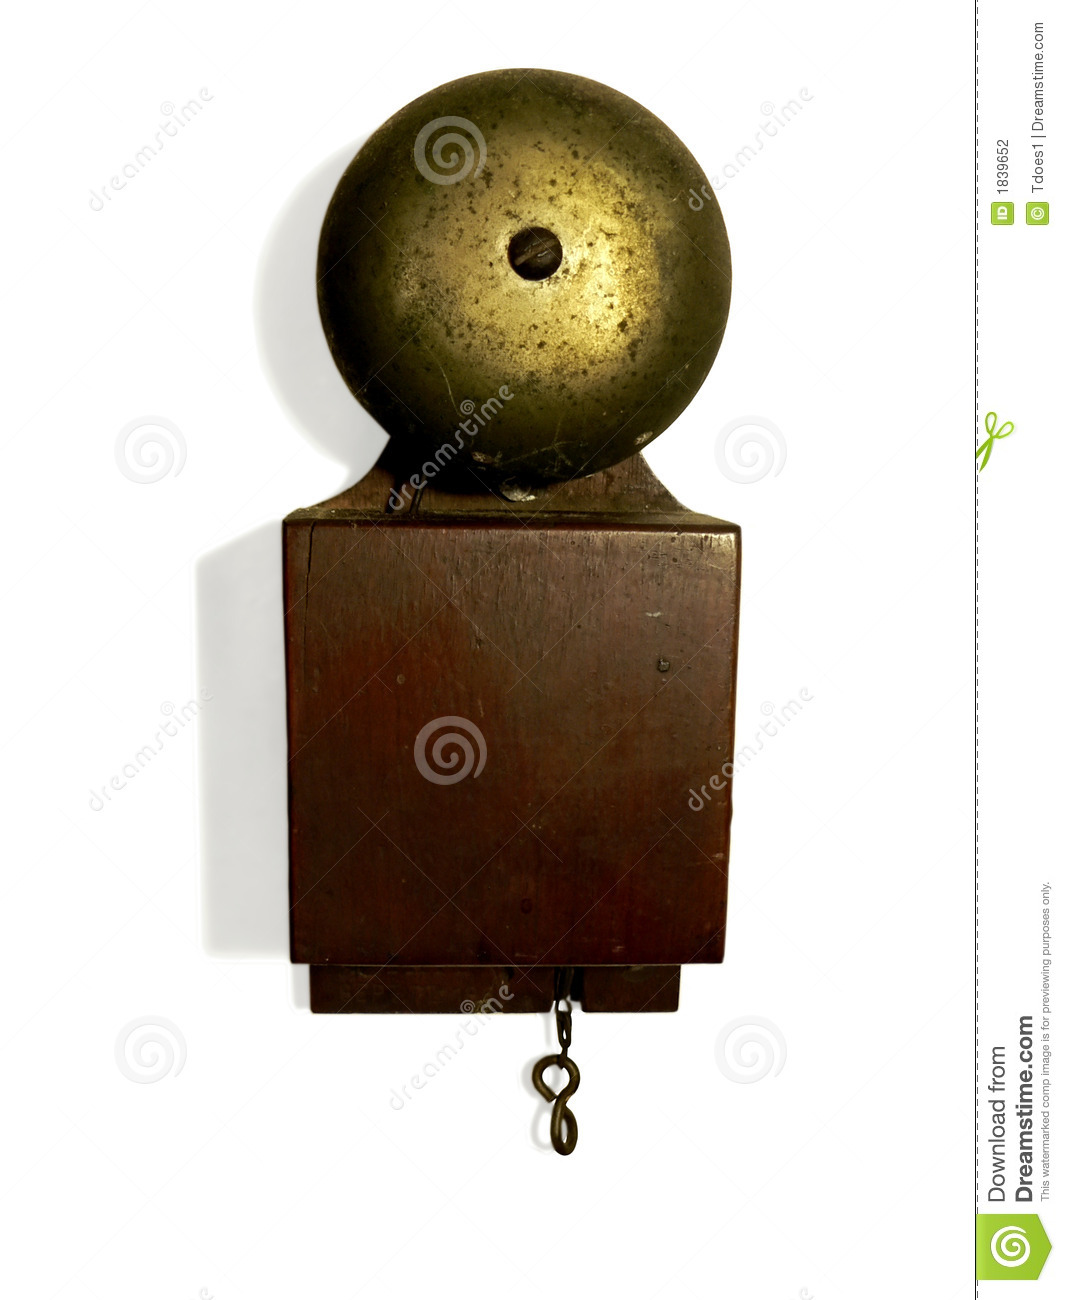 Antique Doorbell Stock Photography Image 1839652